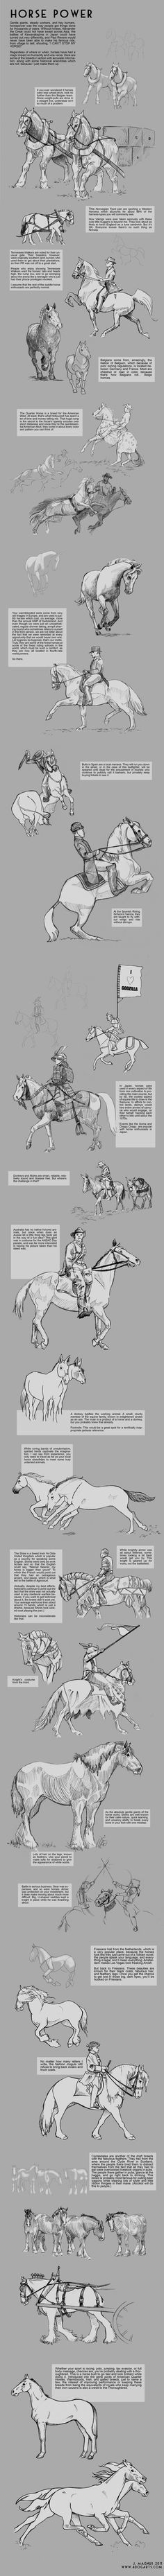 Horse Power Tutorial by sketcherjak on DeviantArt